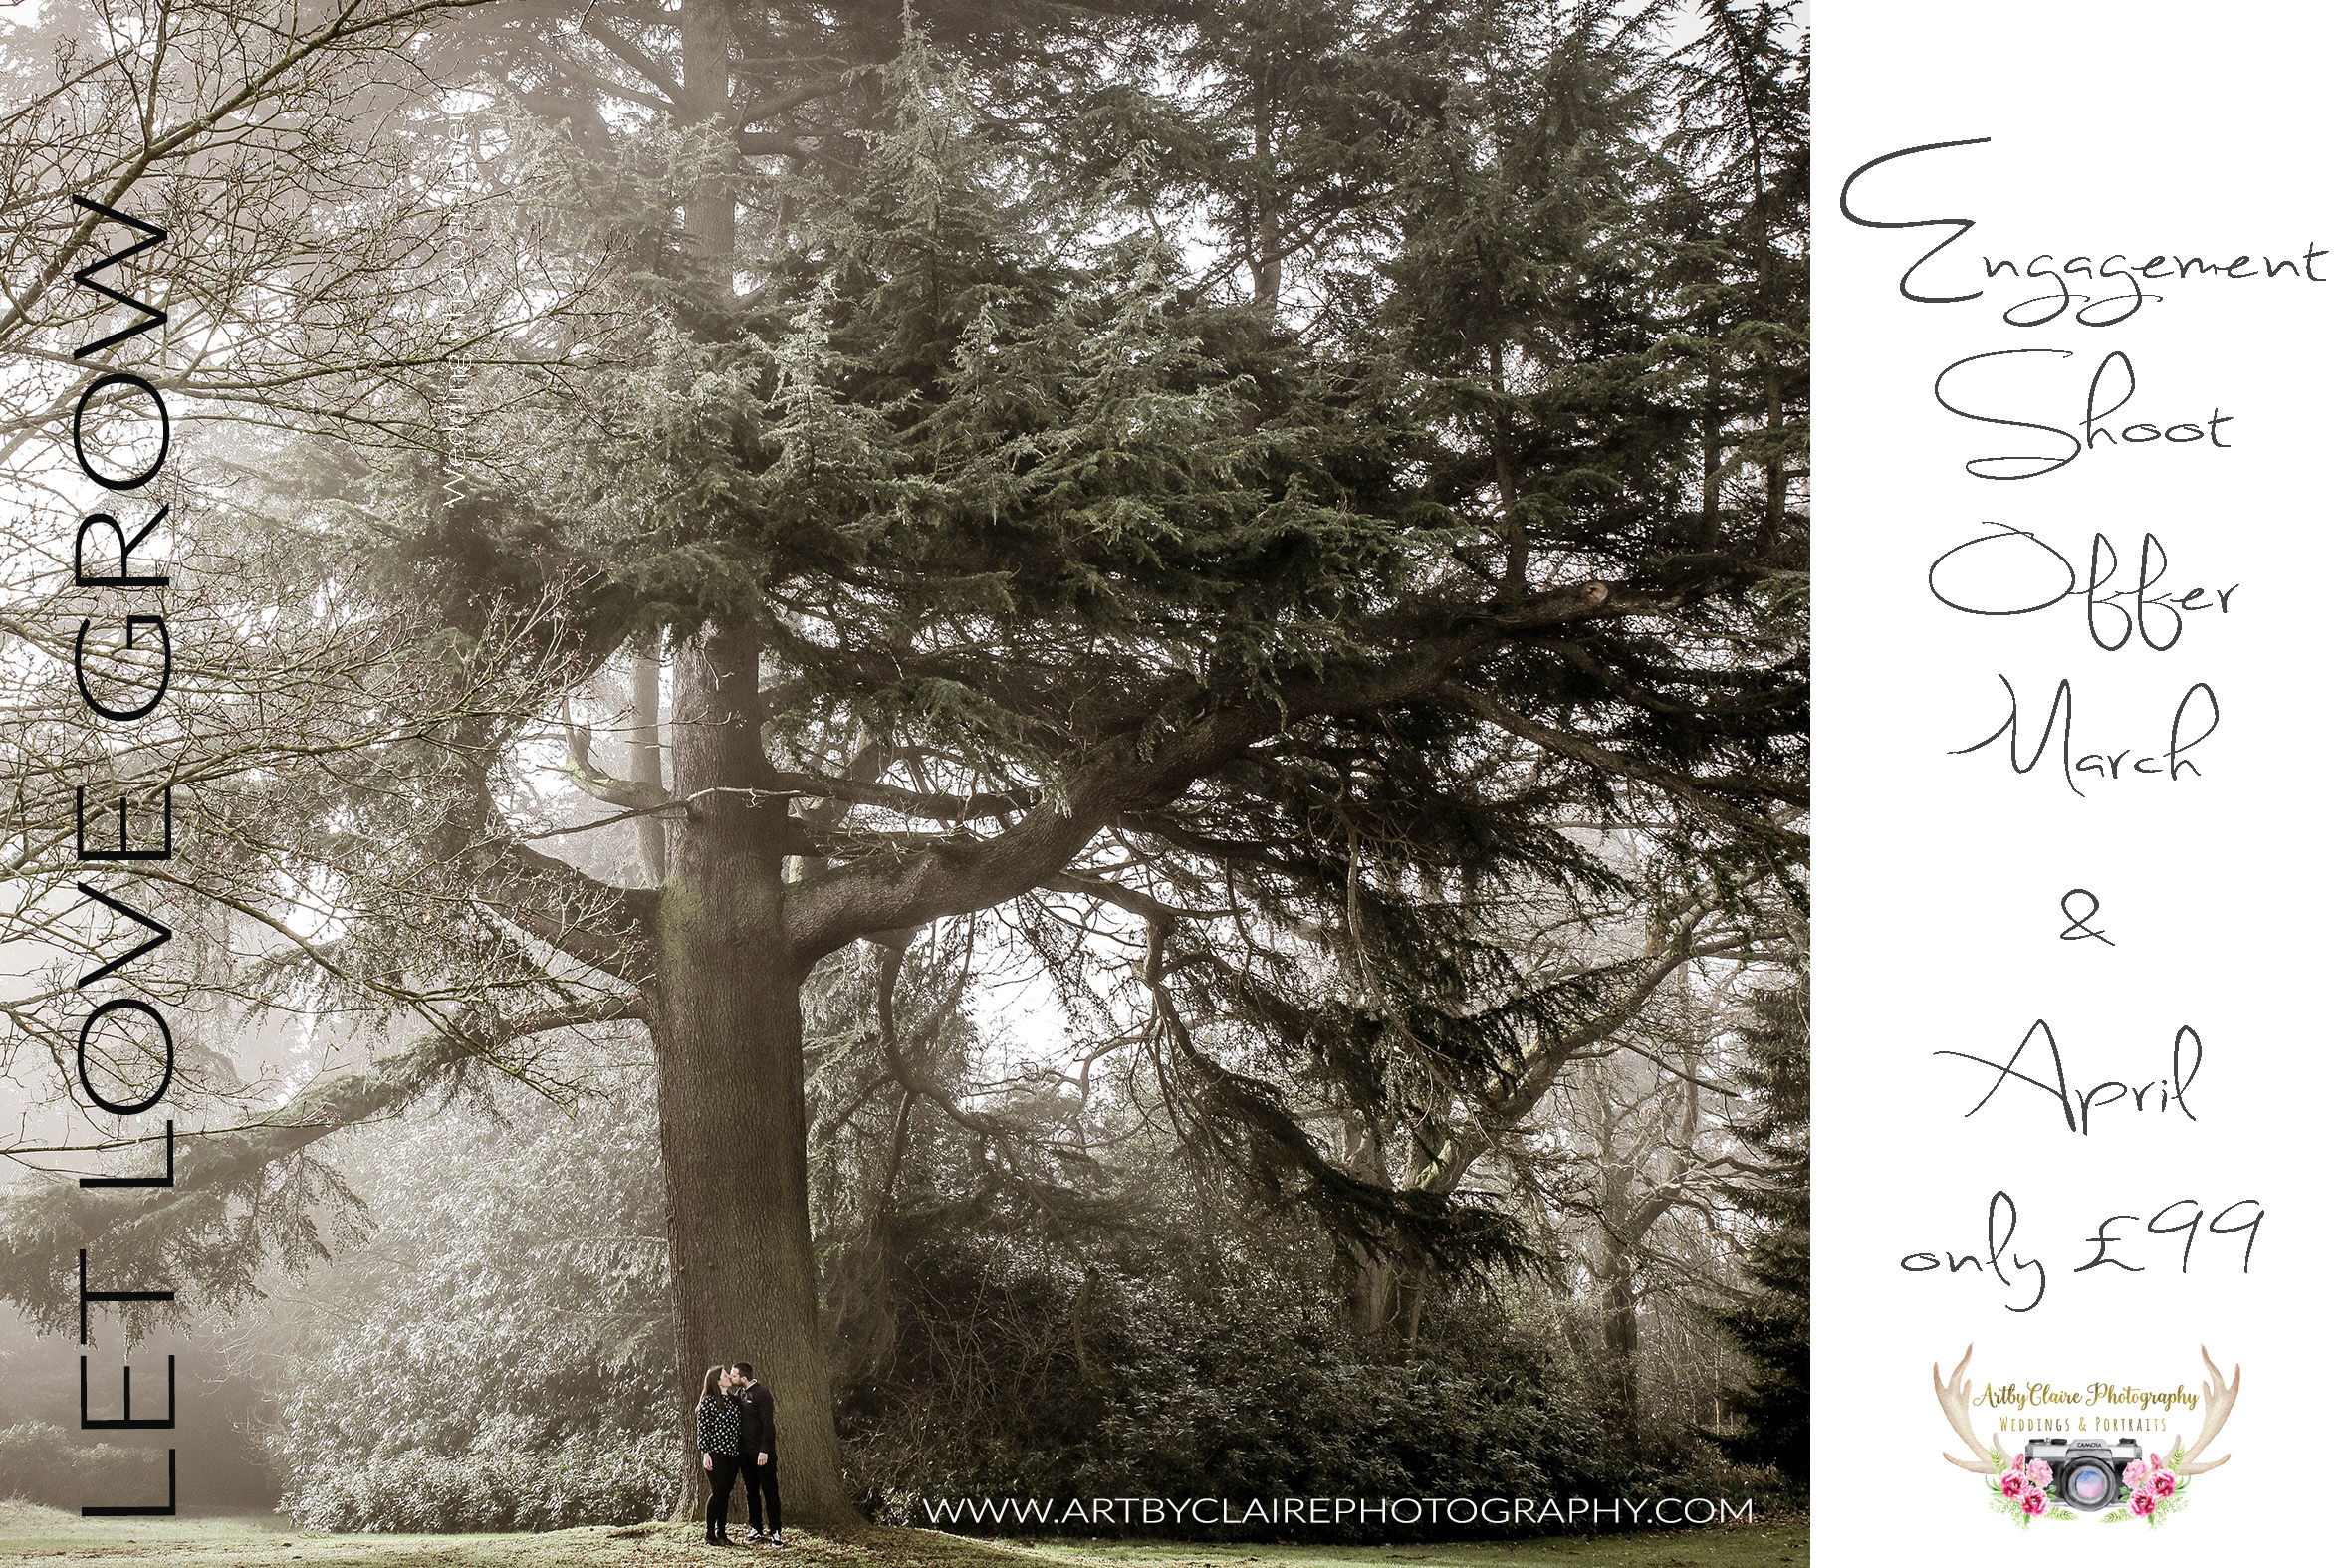 ArtbyClaire Photography Engagement Shoot offer